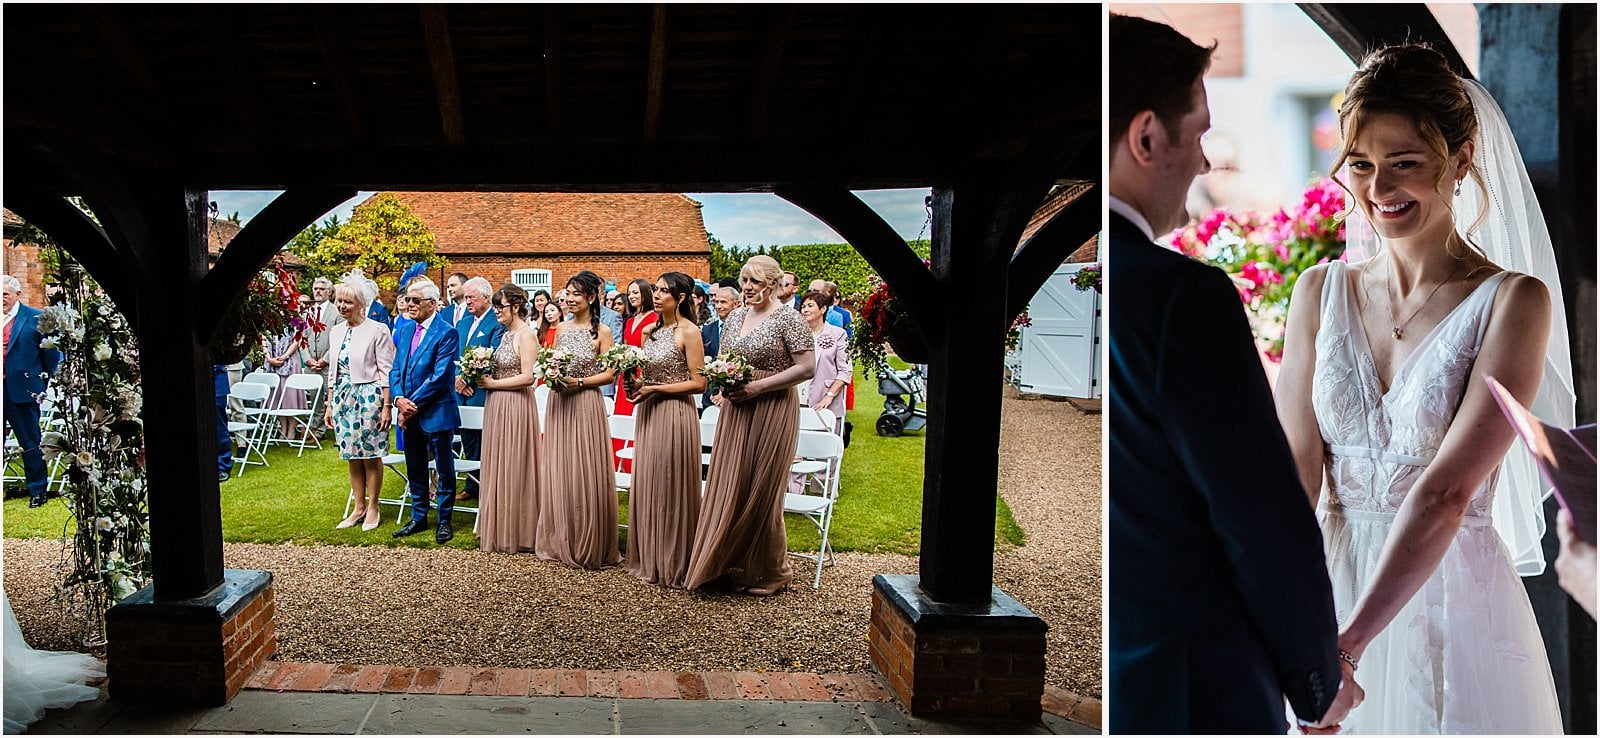 Beautiful Lillibrooke Manor Wedding - Ksenia & Iain 21